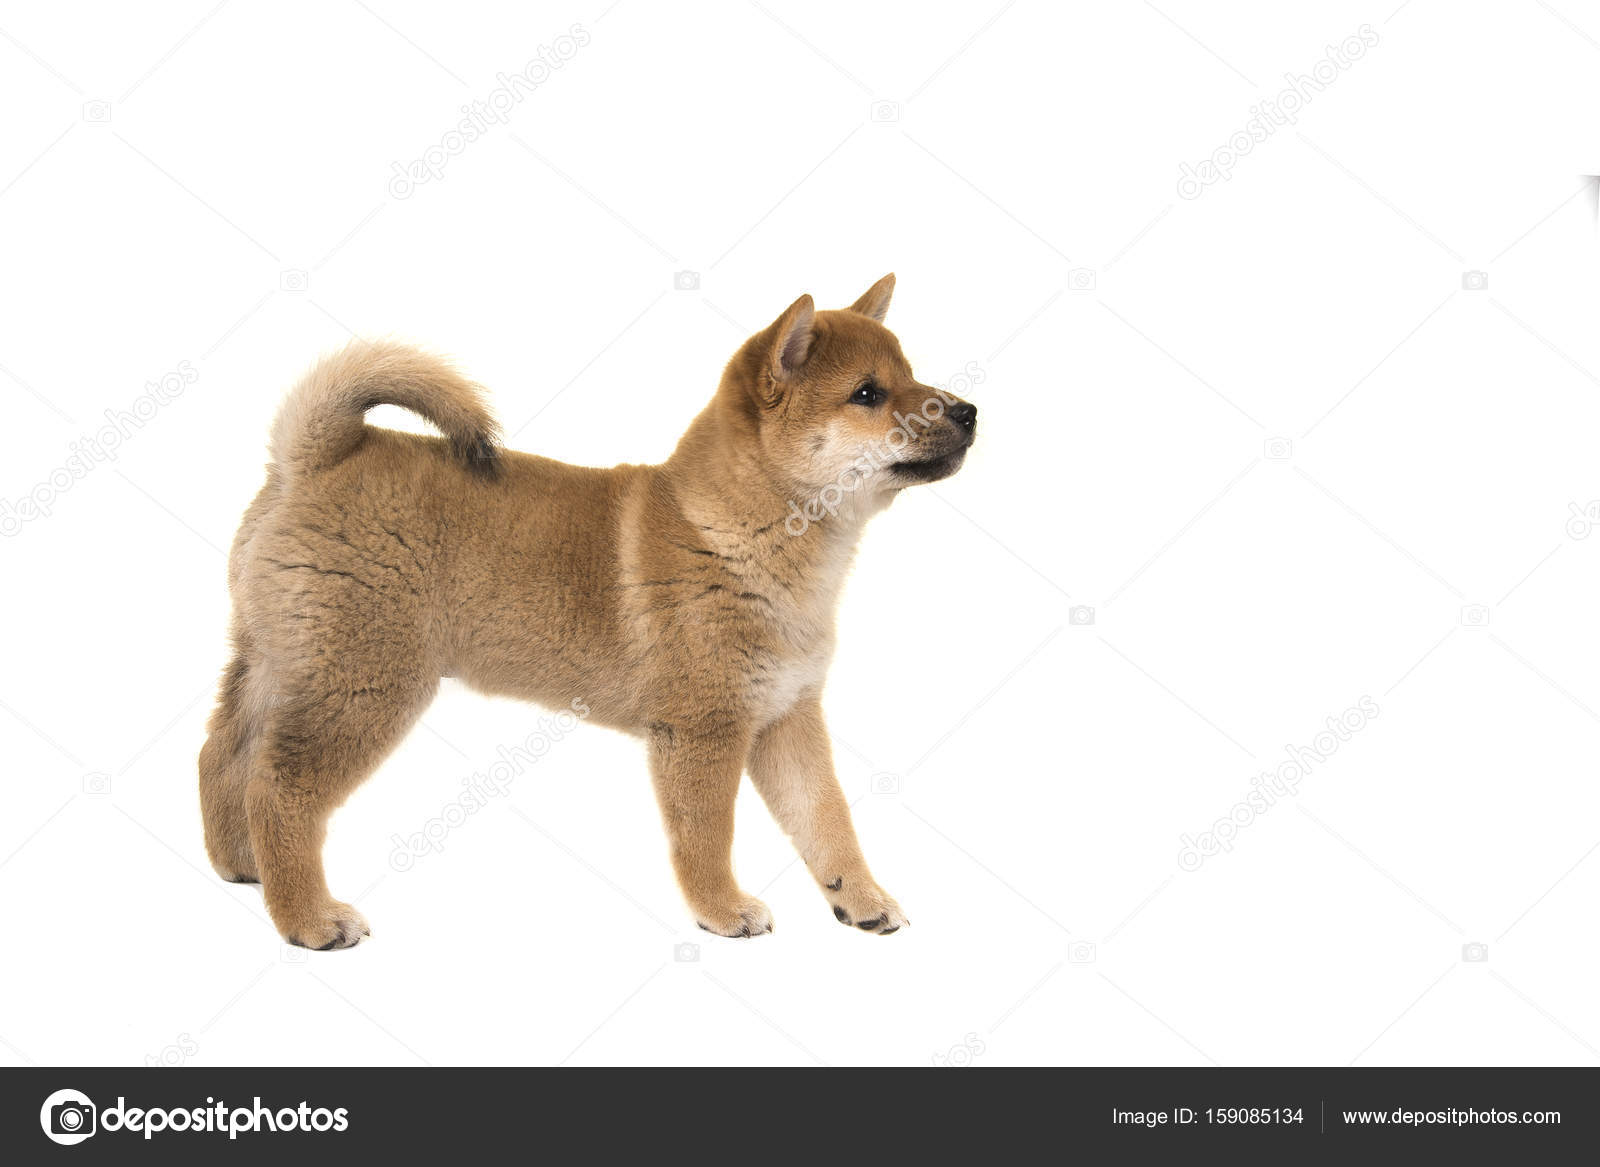 Shiba Inu Puppy Dog Standing Seen From The Side Looking Up Solated On A White Background Stock Photo C Miraswonderland 159085134